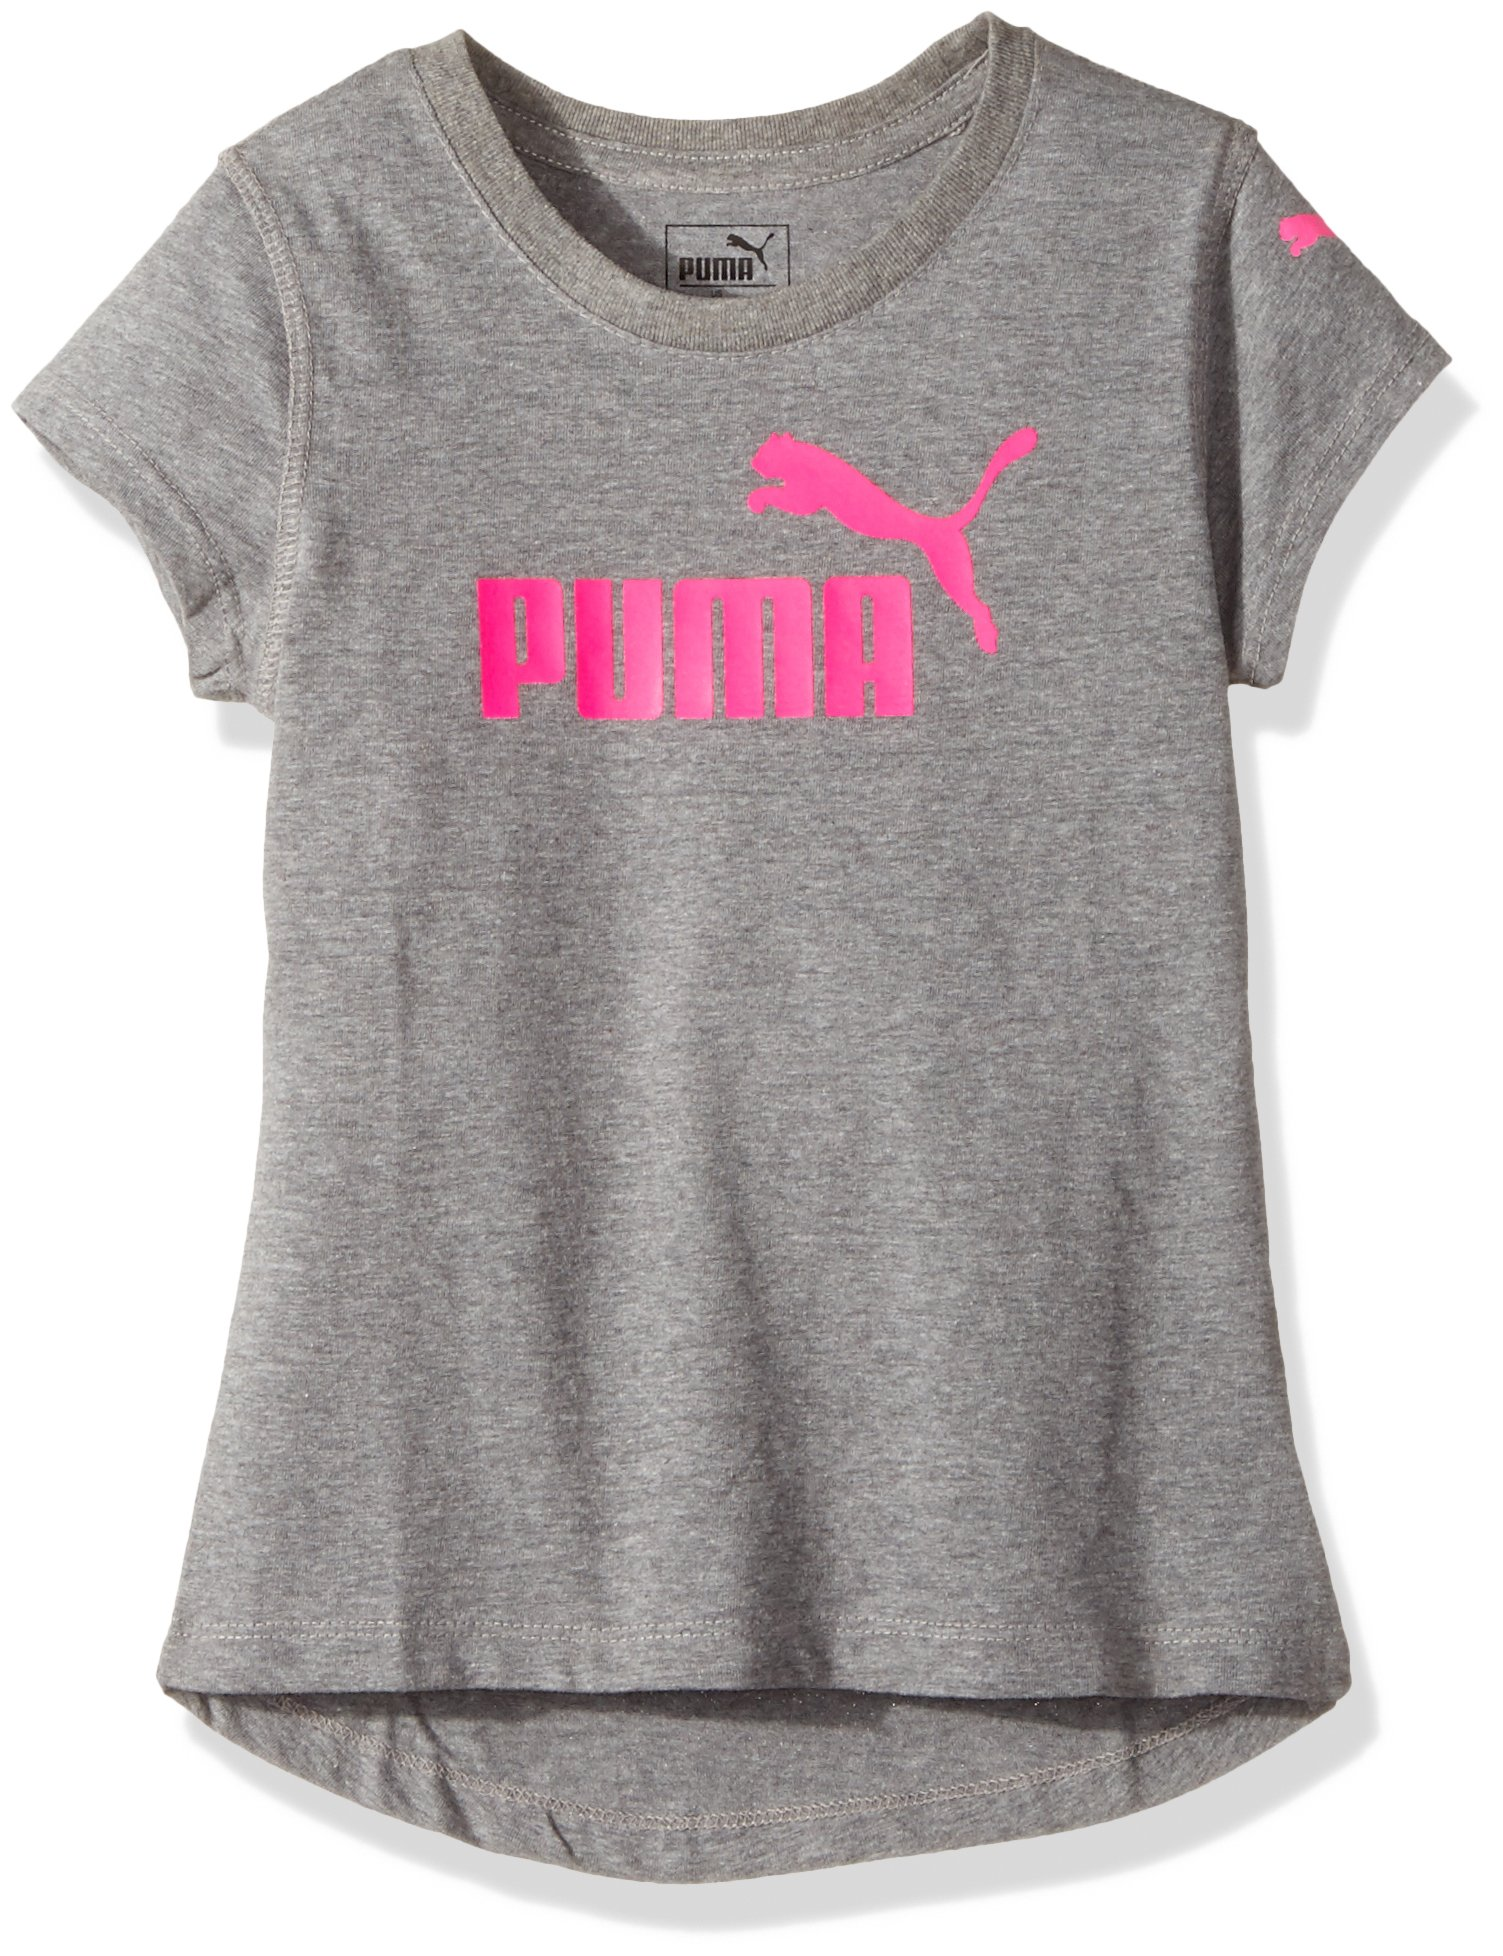 PUMA Big Girls' Logo Tee, Medium Gray Heather, Extra Large